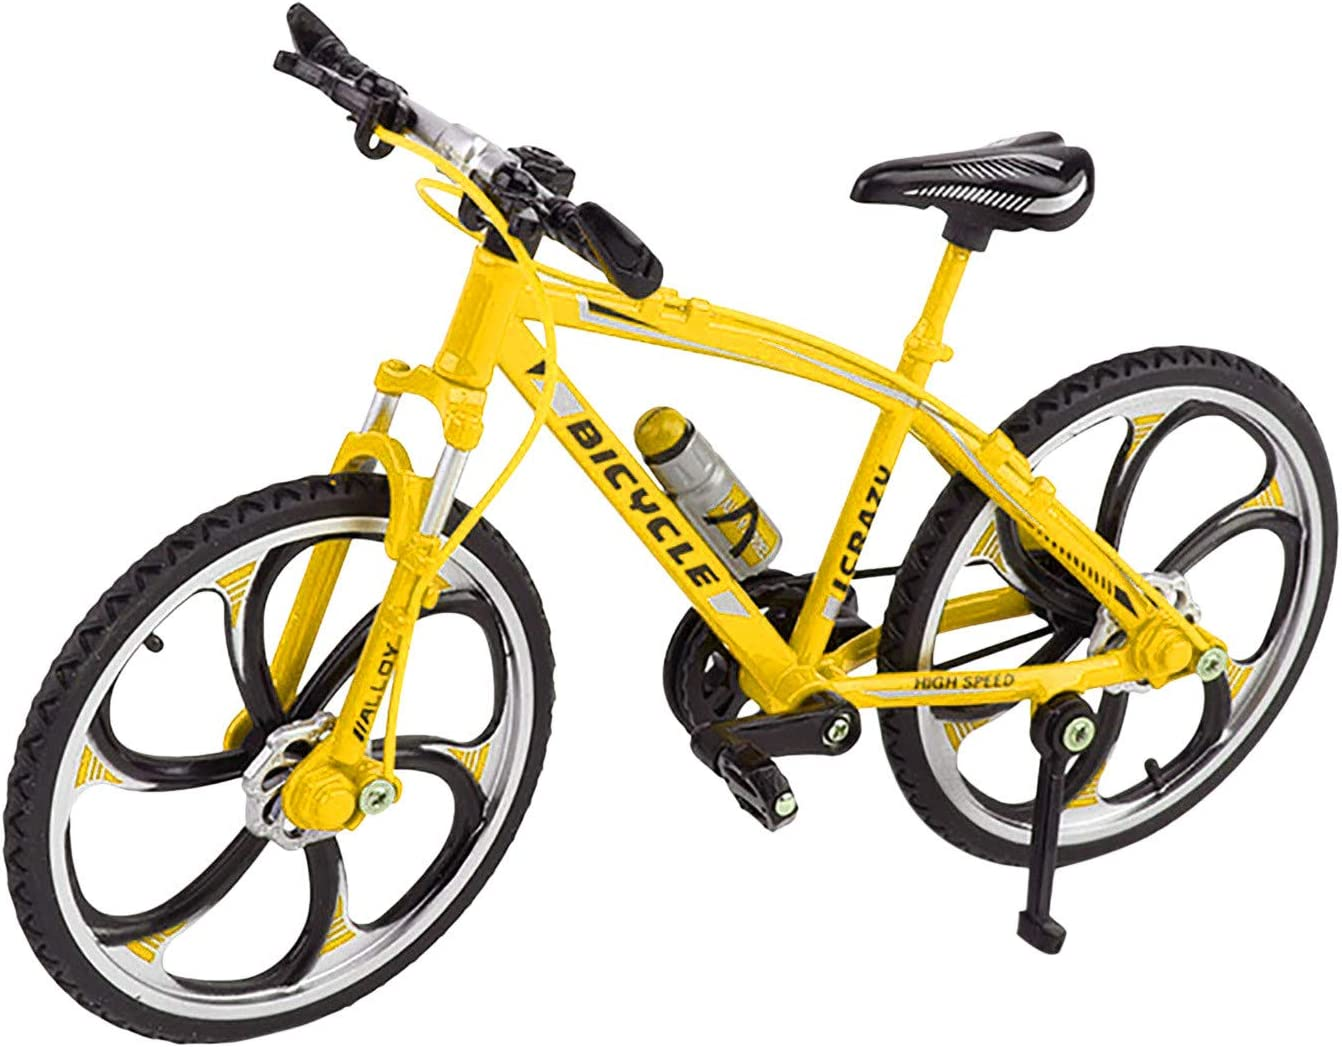 Bluecatlala Simulation Alloy Limited price sale Bicycle Toy Mountain Bike Mini Mode Ranking TOP5